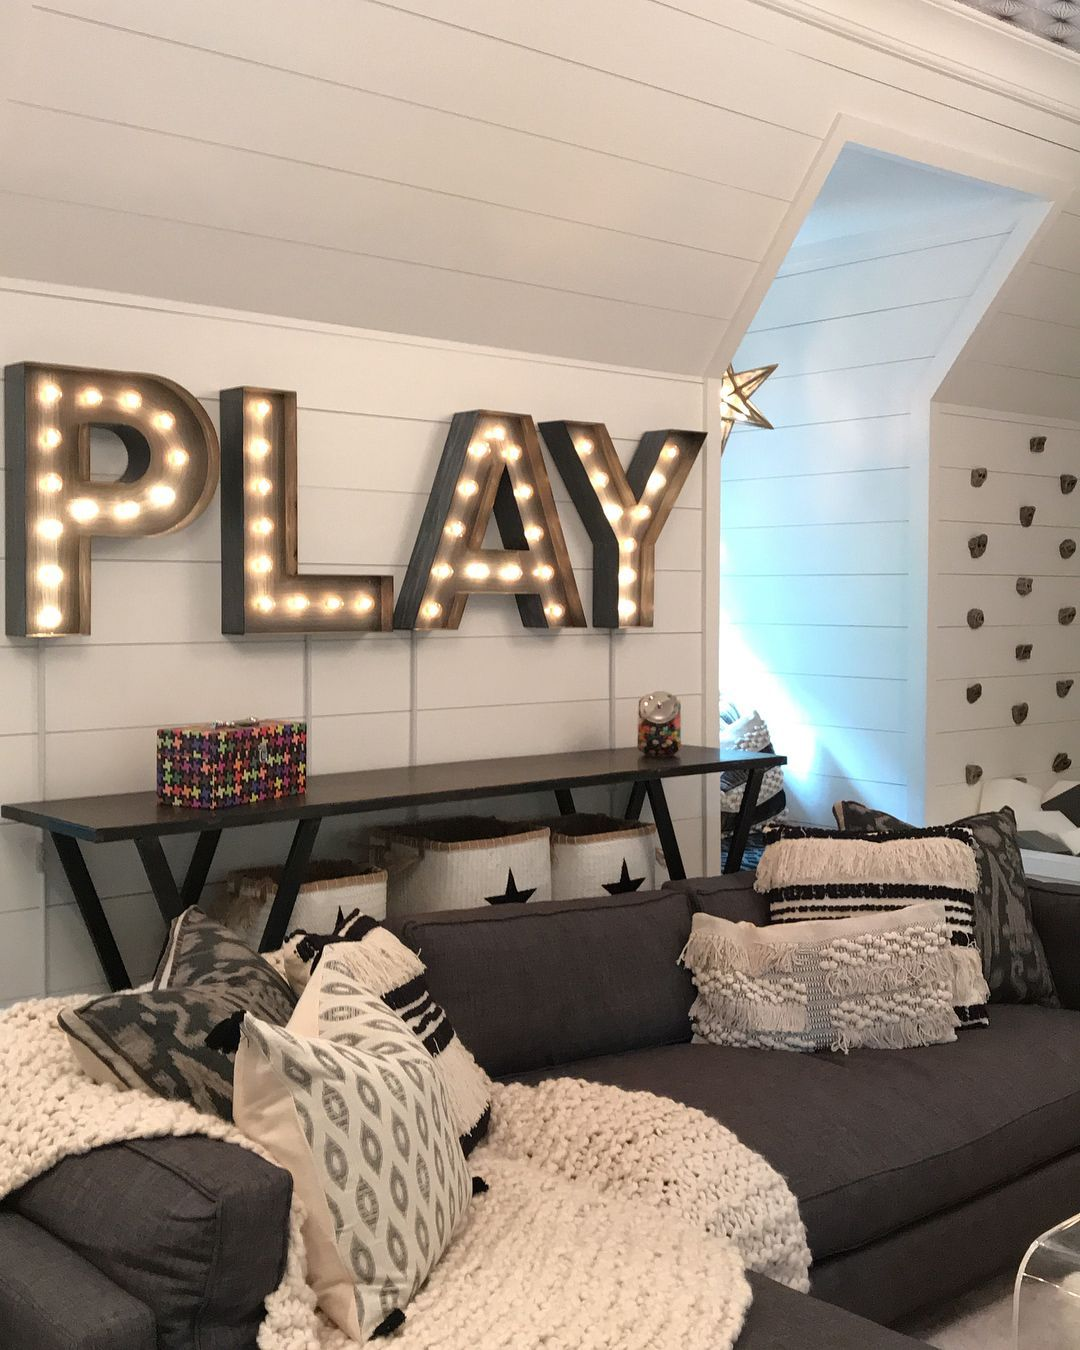 30 Best Playroom Ideas For Small And Large Spaces | Game